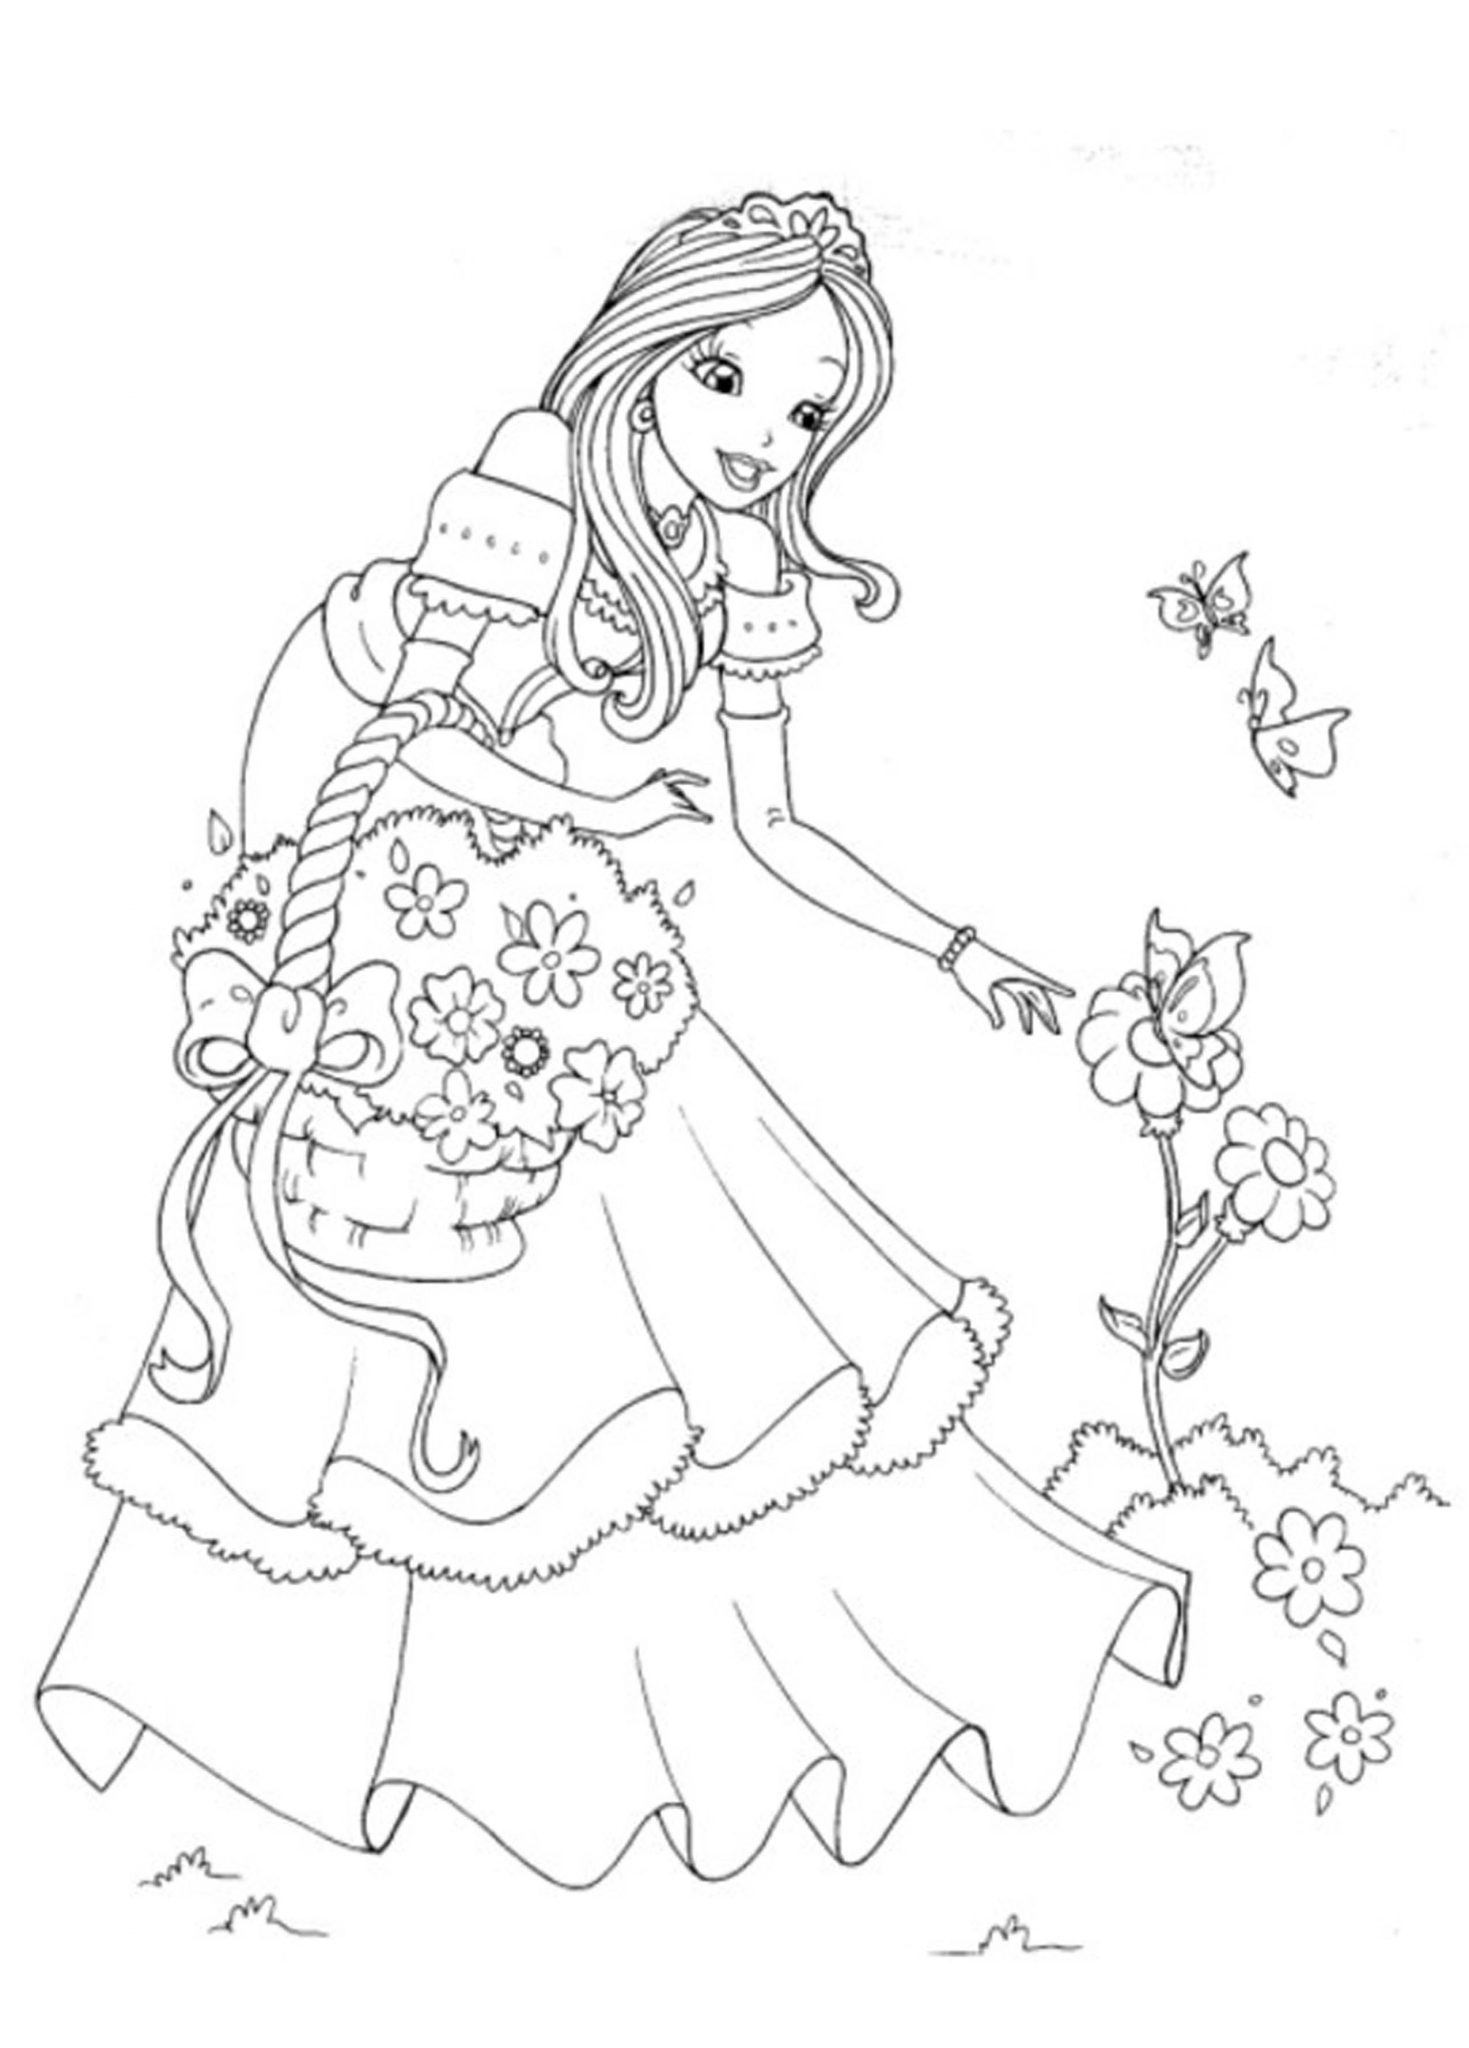 coloring pages of princesses Print & Download   Princess Coloring Pages, Support The Child's  coloring pages of princesses